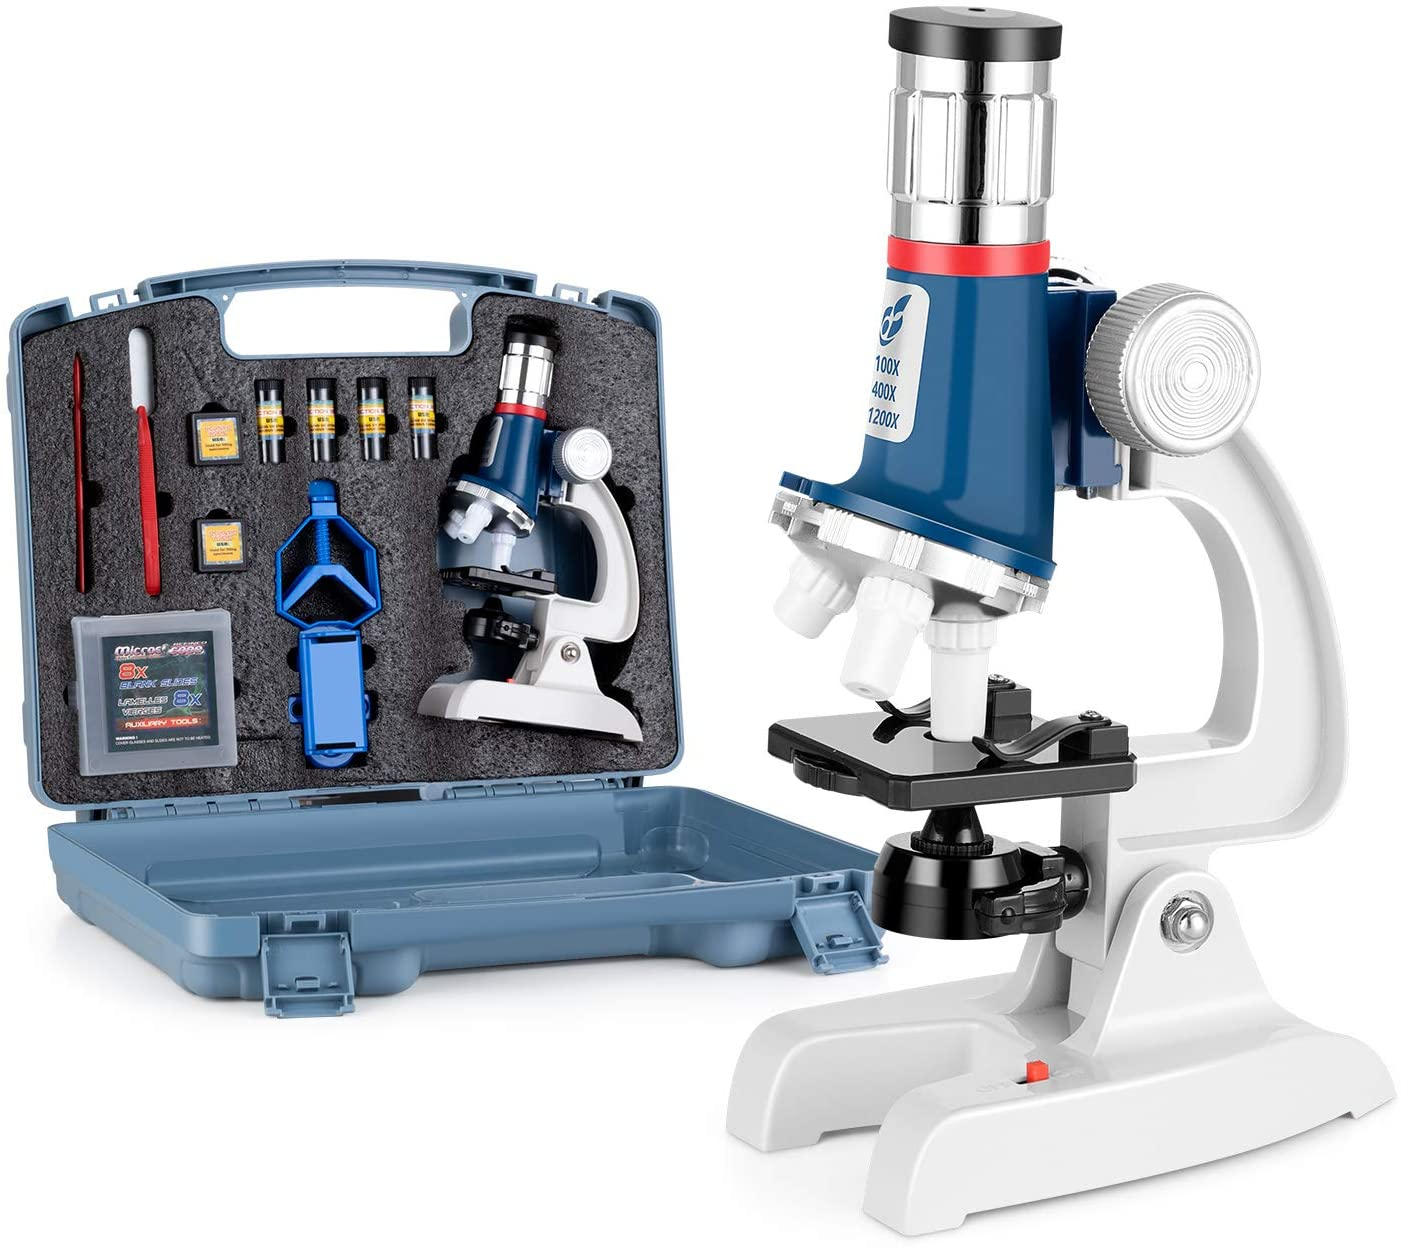 Review of Uarzt 100X-1200X Microscope Science Kit for Kids